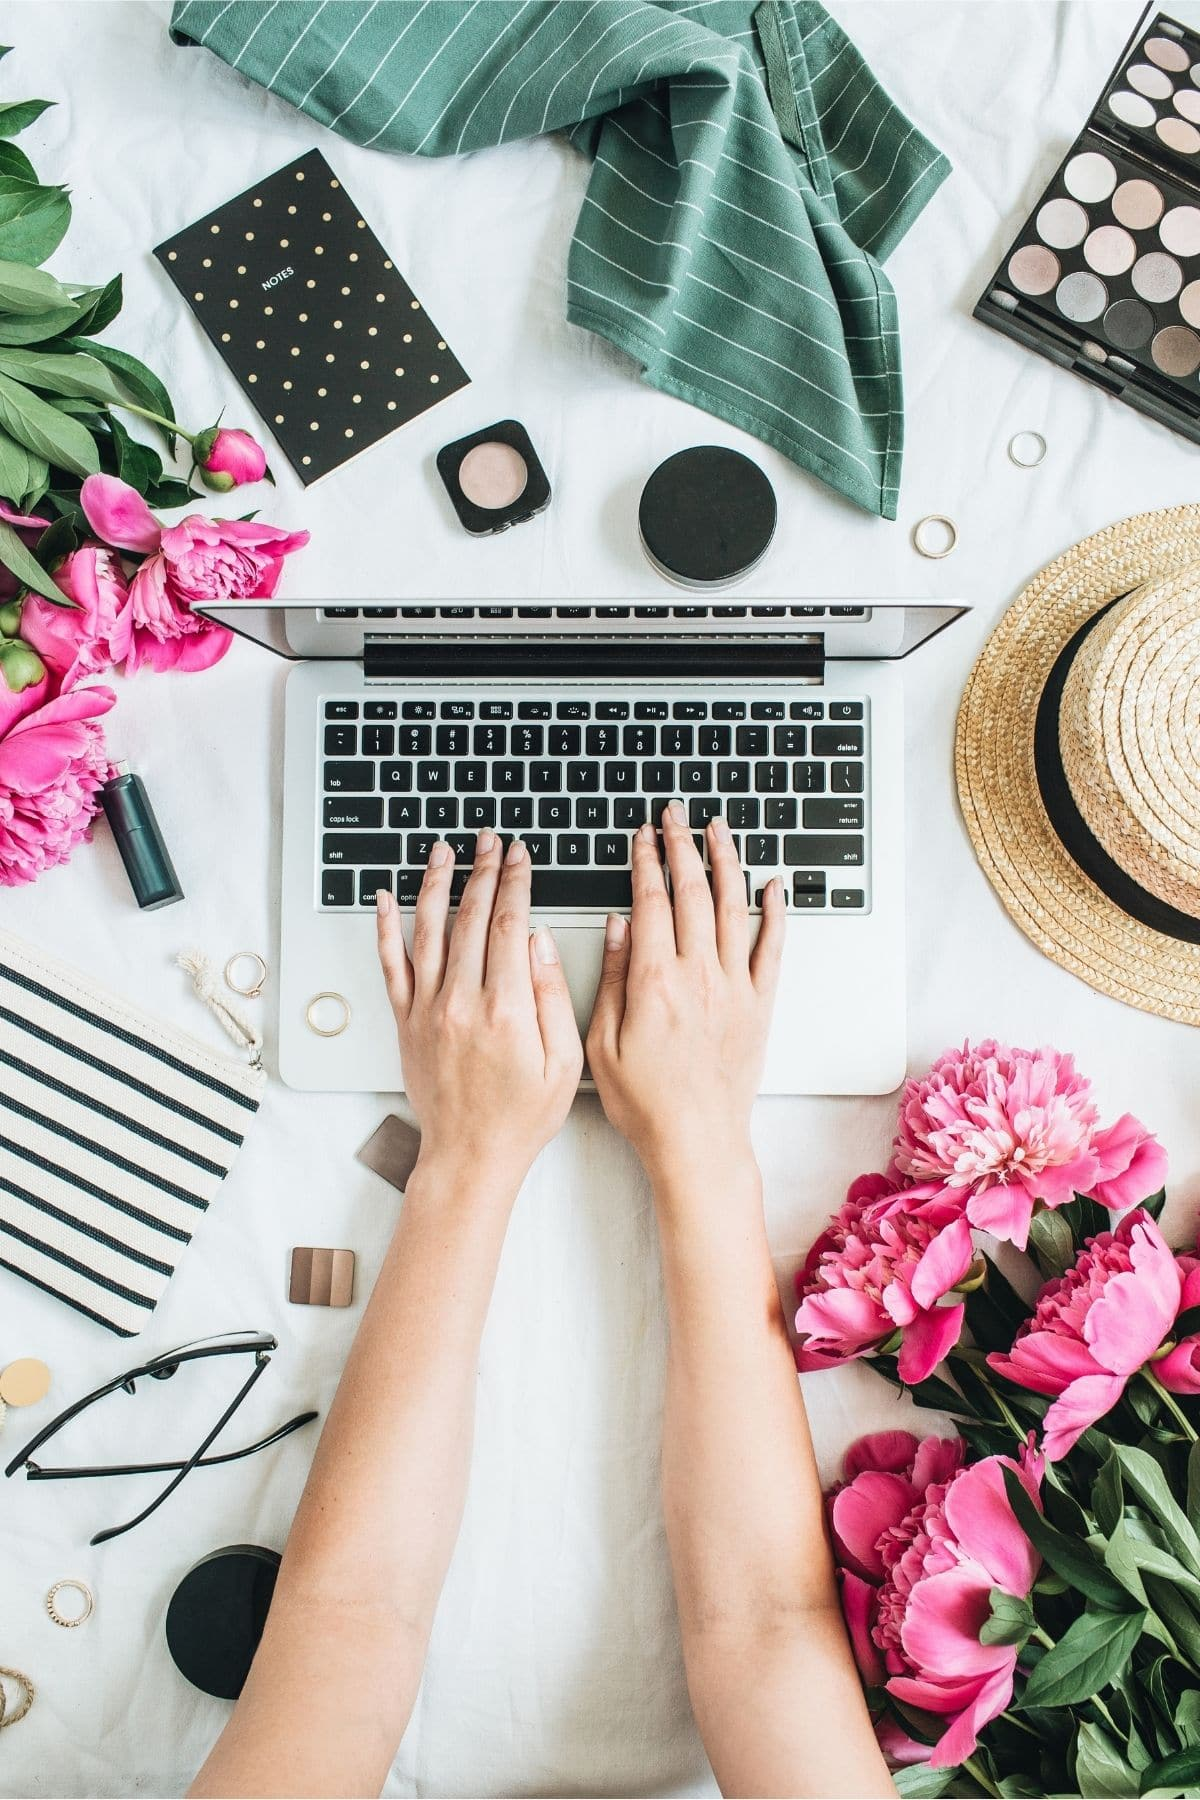 a person's hands and arms reached out touching a computer with flowers, a notebook, makeup, a hat, and more around the laptop